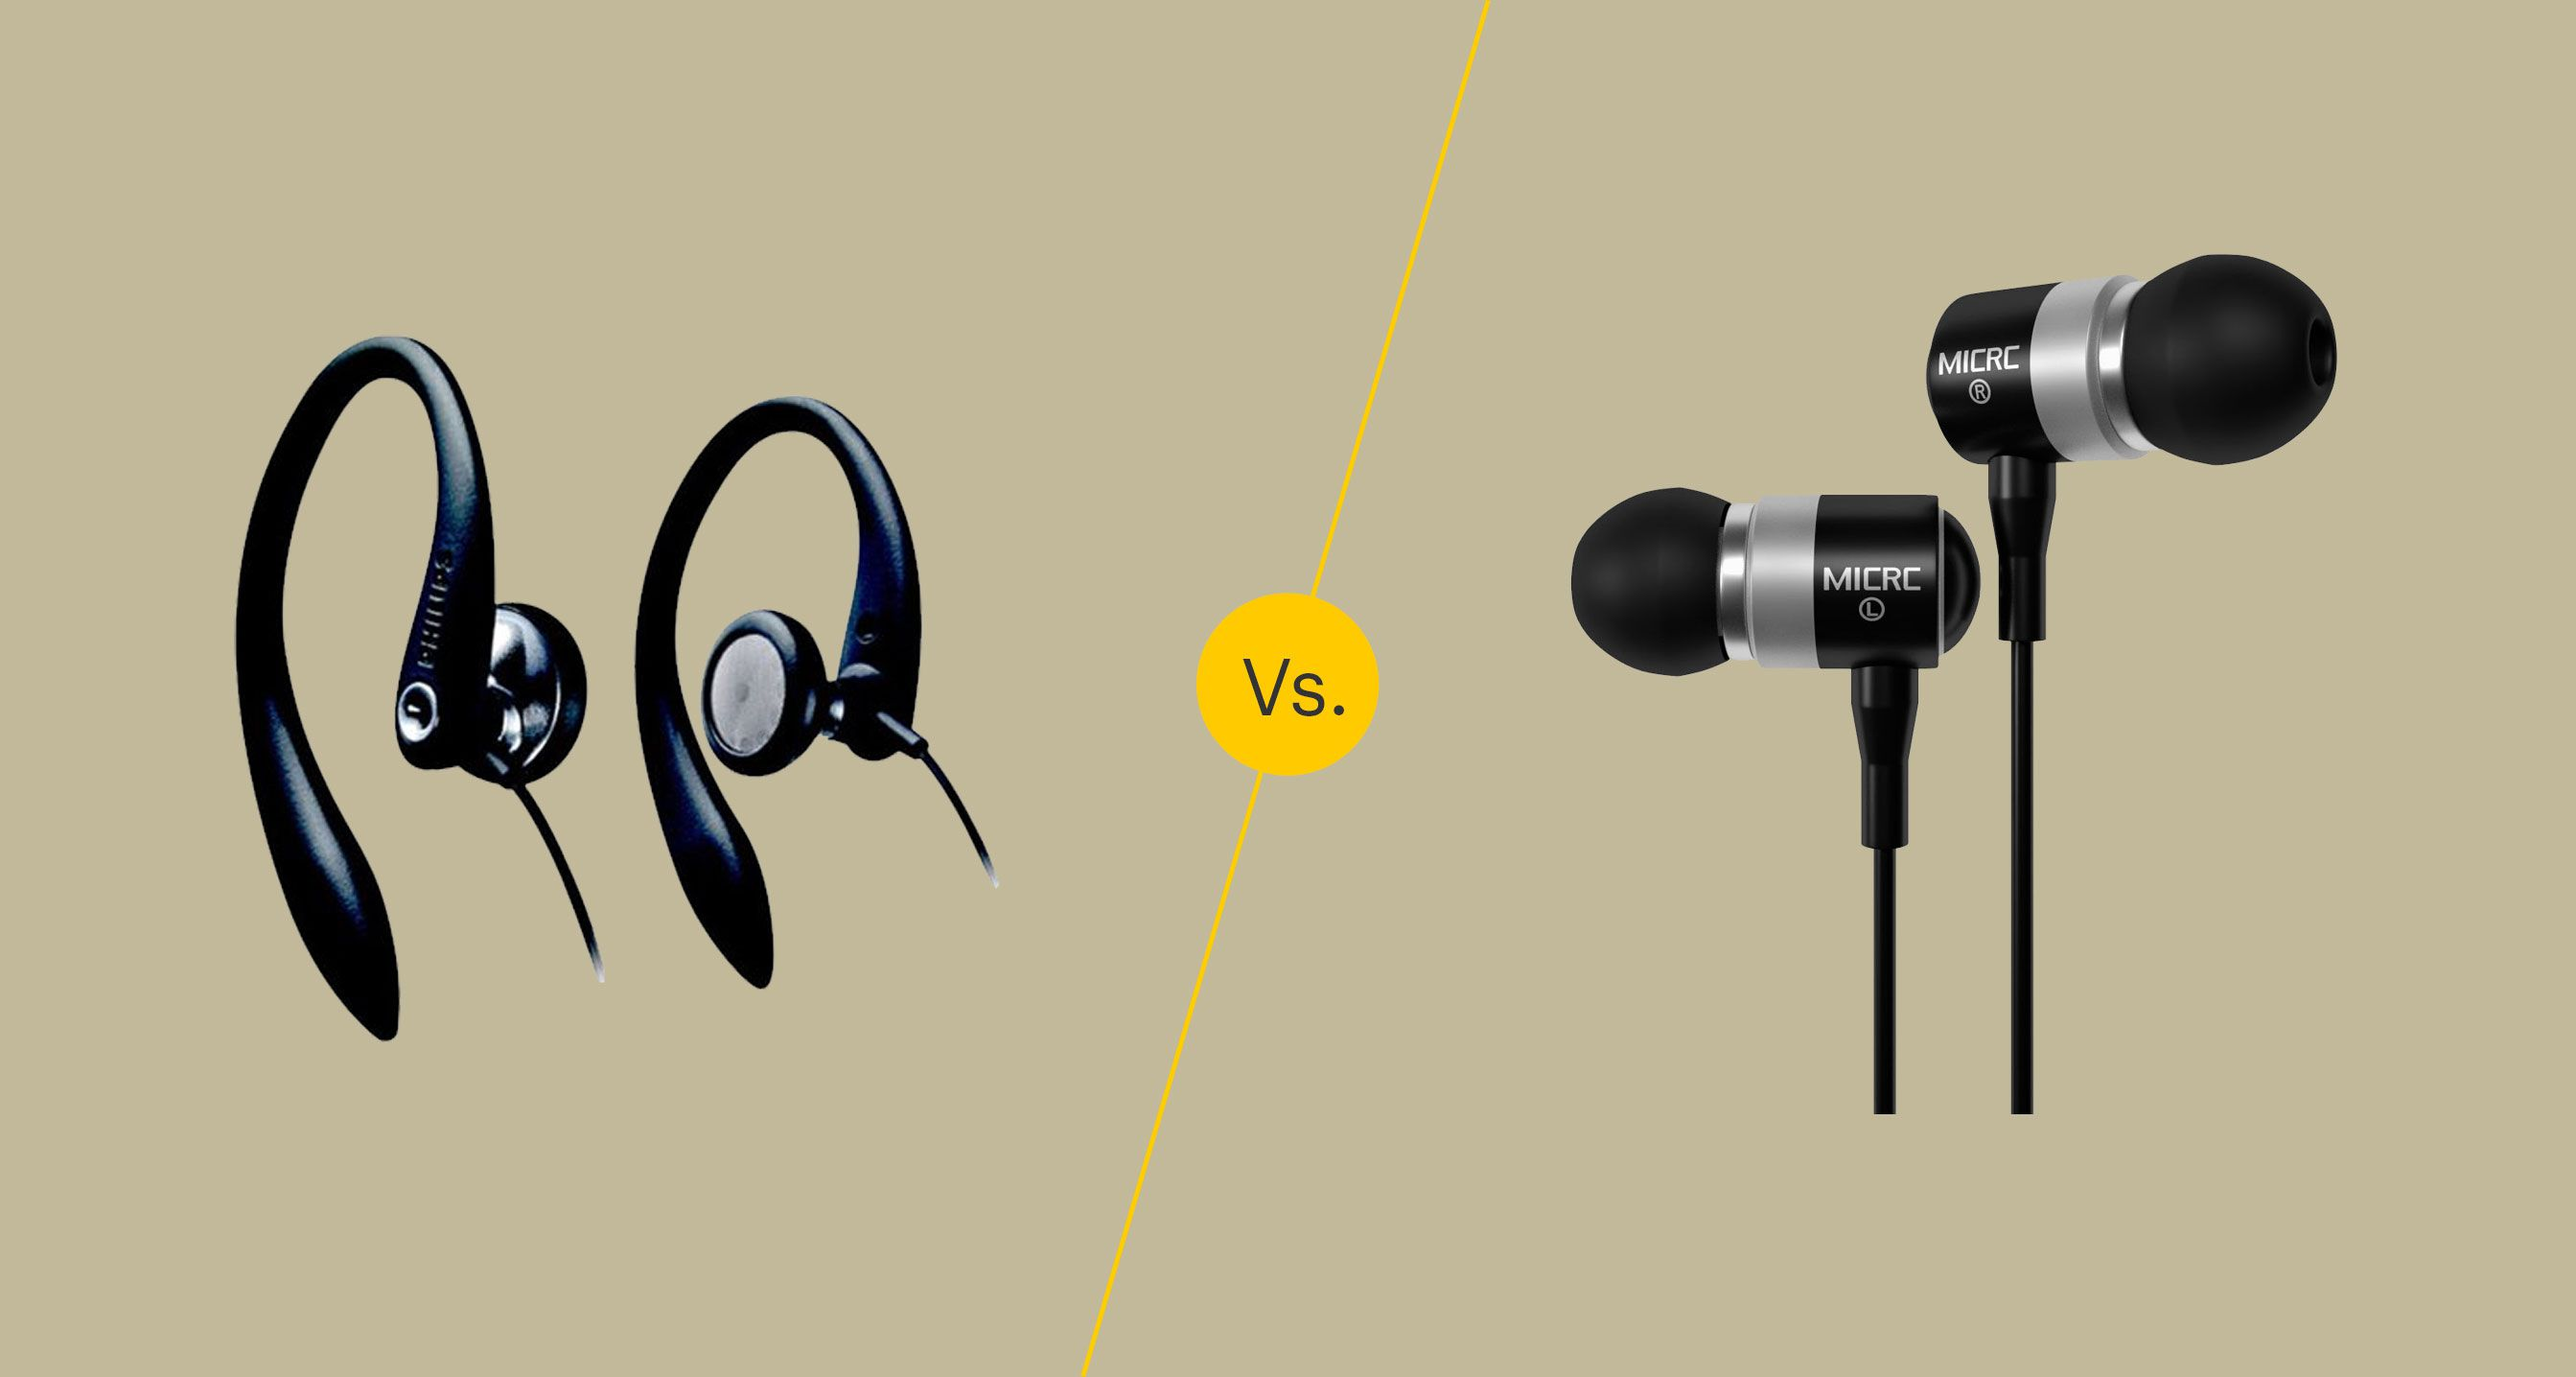 Earphones Vs Earbuds